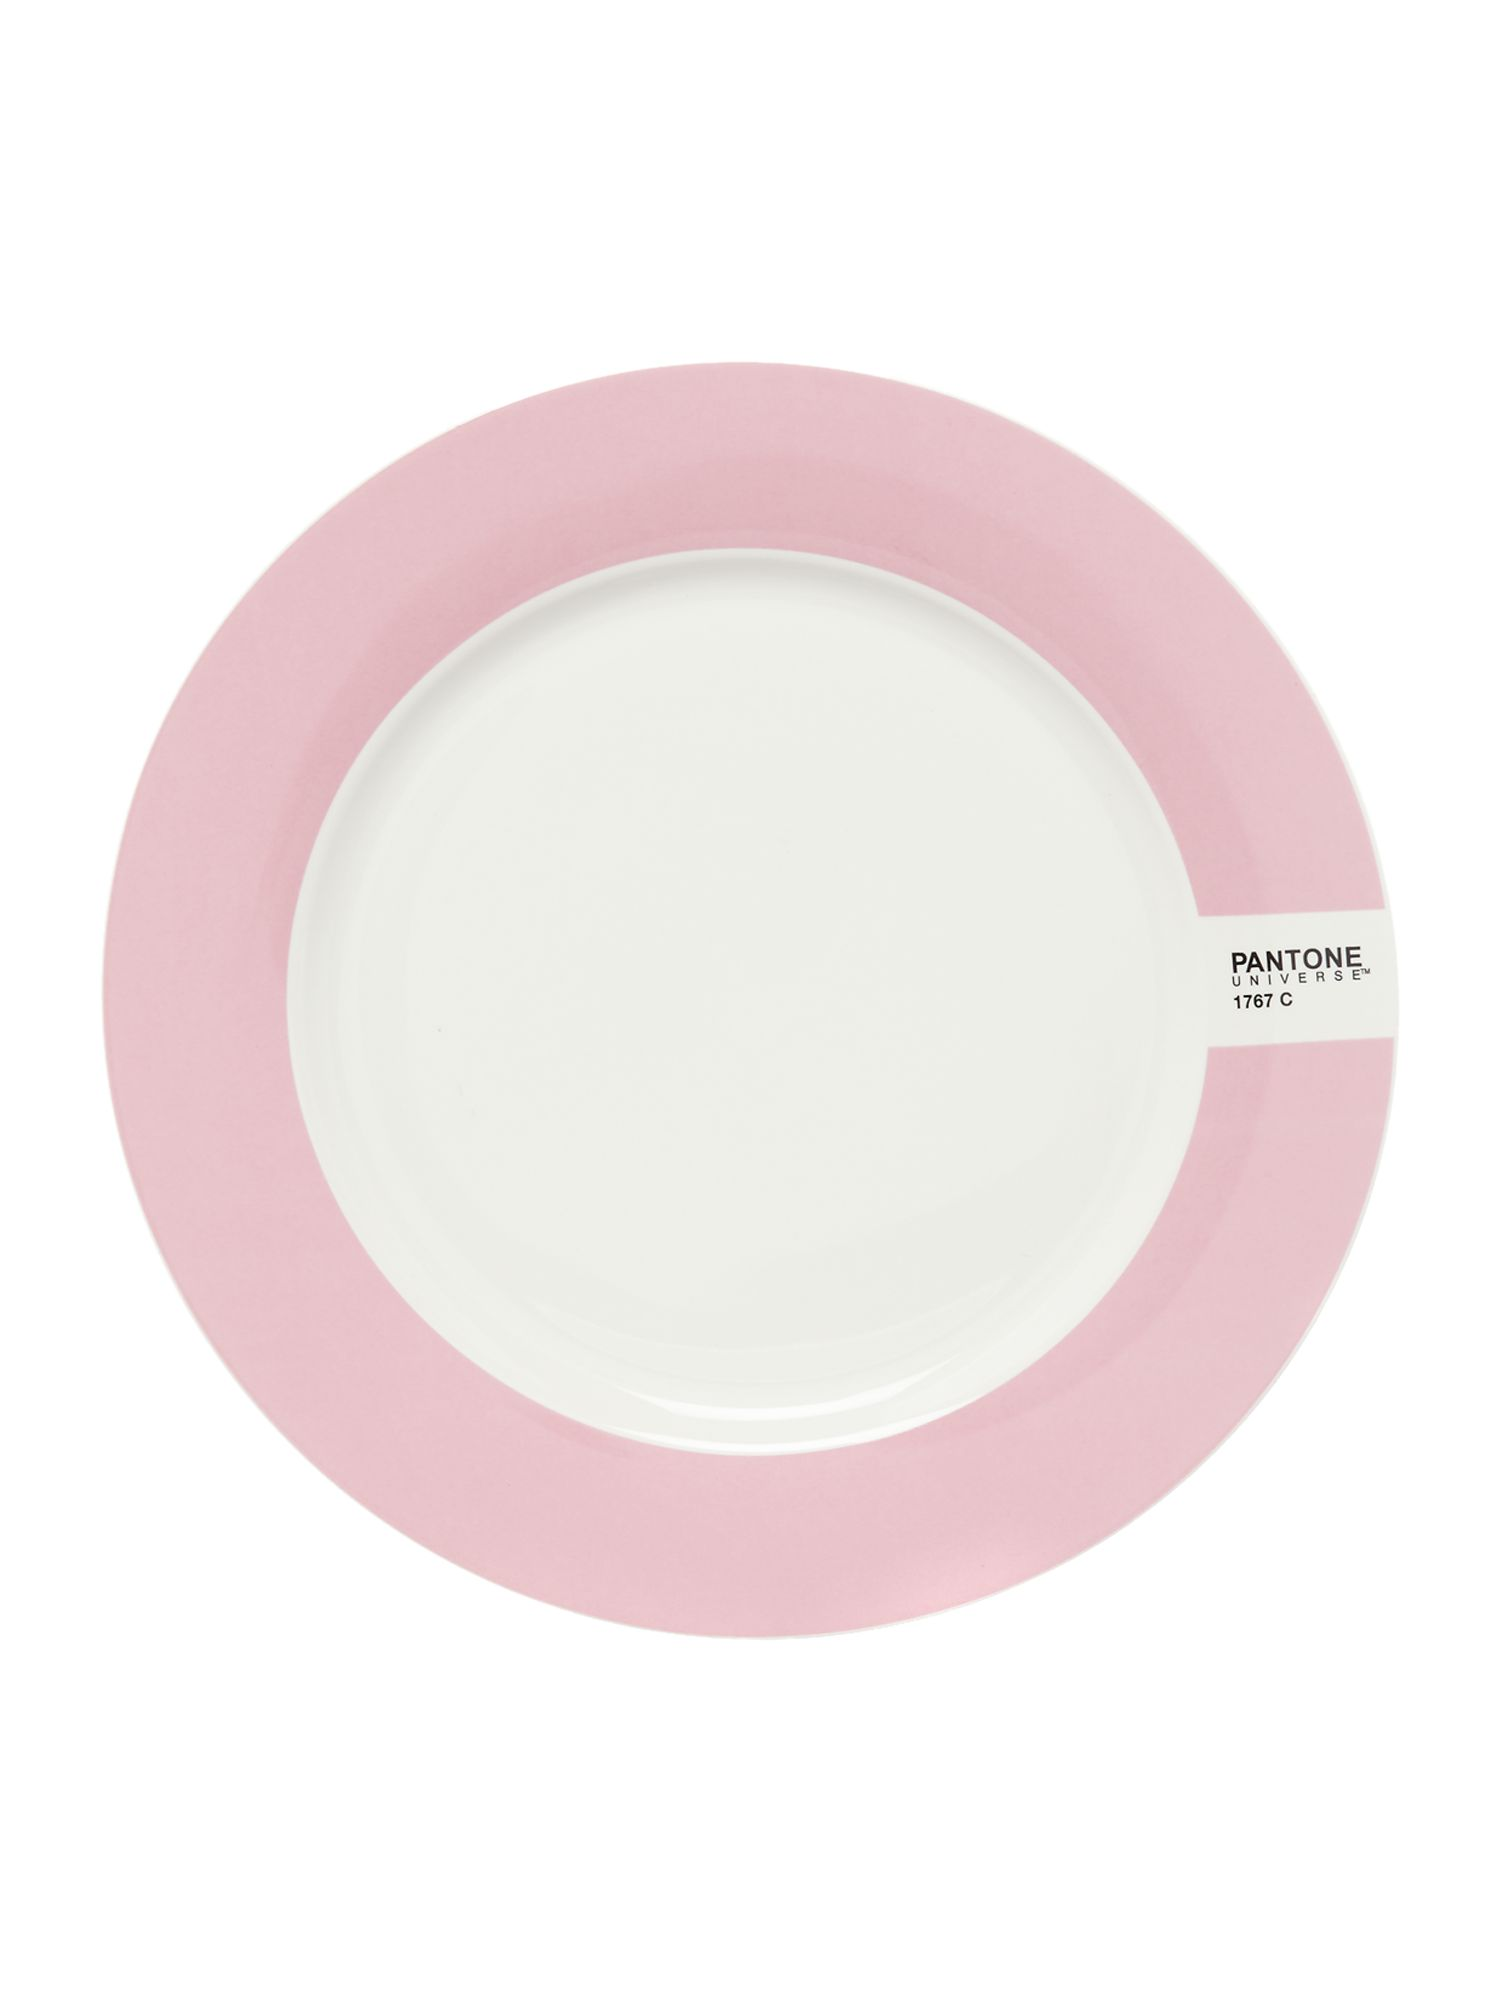 Image of Pantone Medium plate luca trazzi pink